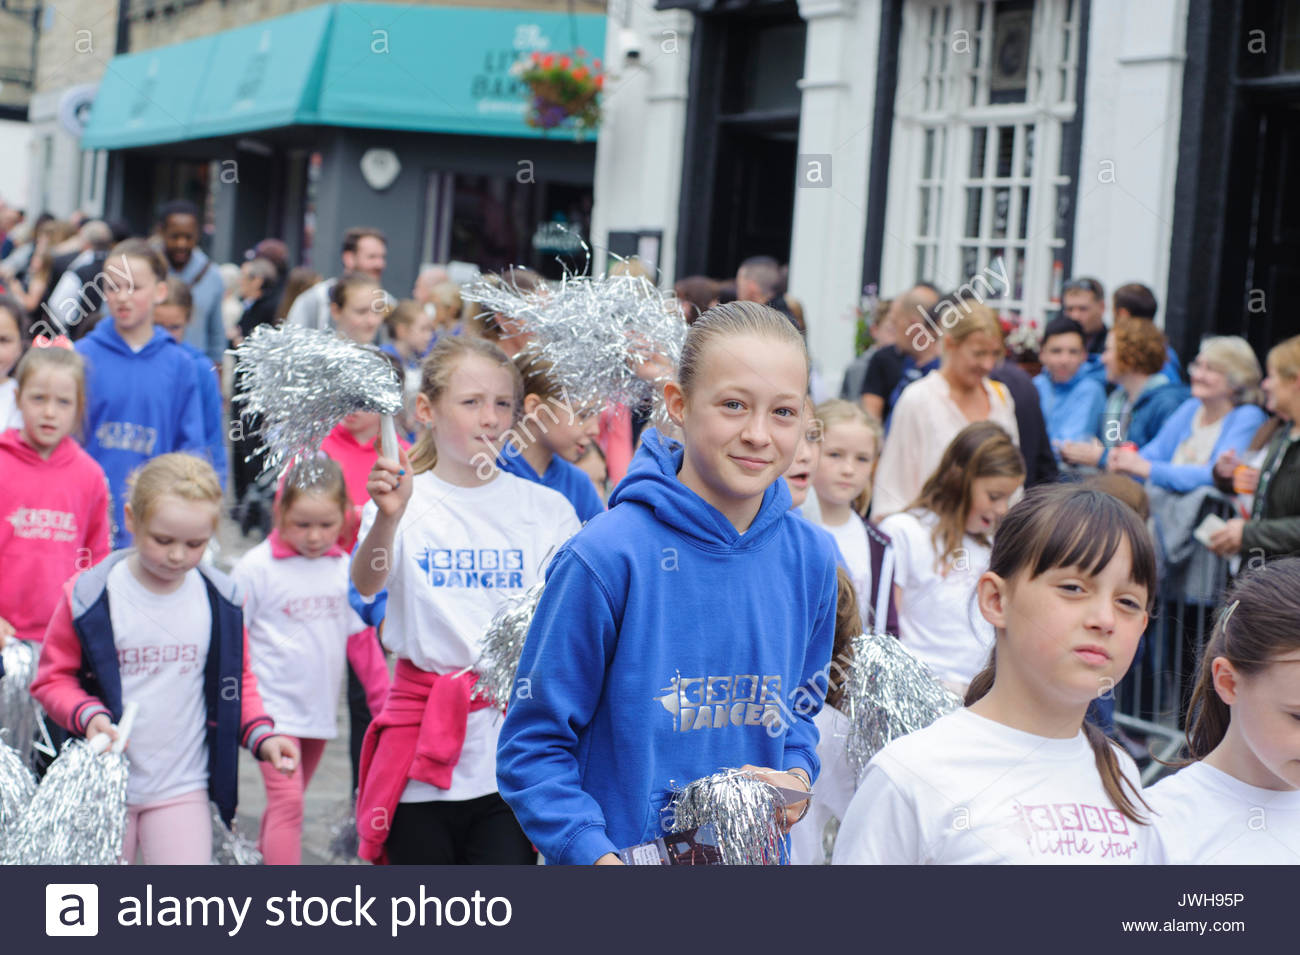 South Queensferry, UK. 12th Aug, 2017. South Queensferry, UK. August 12th, 2017. Schoolchildren taking part in the procession as it winds it's way along the High Street. QueensferryÕs annual Fair is a week-long event and is principally a festival of sports and entertainments for the towns schoolchildren, culminating in a procession through the town and the crowning of the Fair Queen. Credit: Roger Gaisford/Alamy Live News - Stock Image